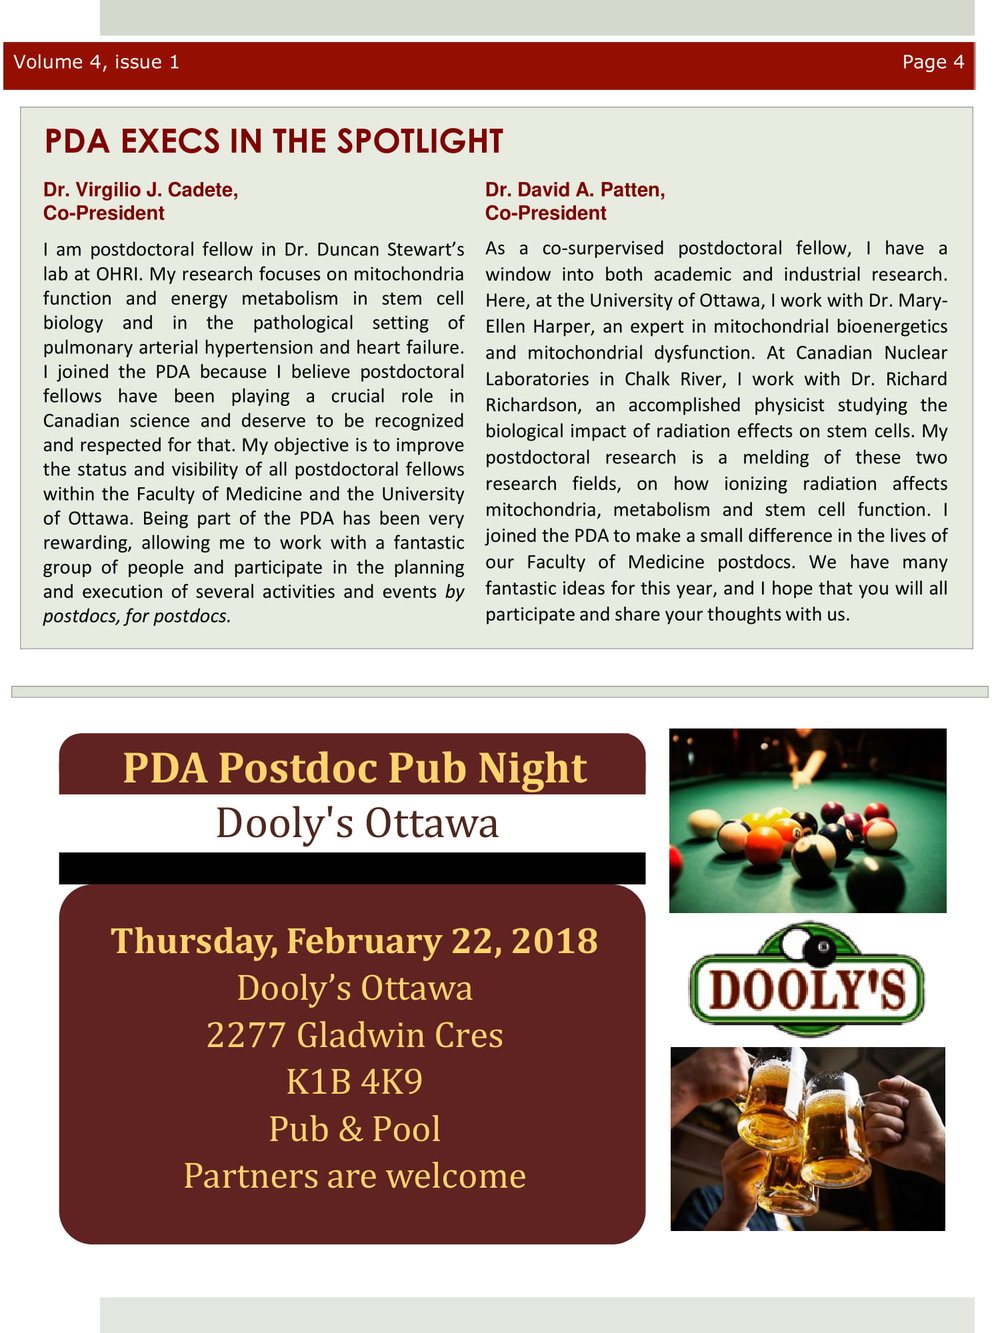 PDA_Newsletter_Volume_4_Issue_1-4.jpg